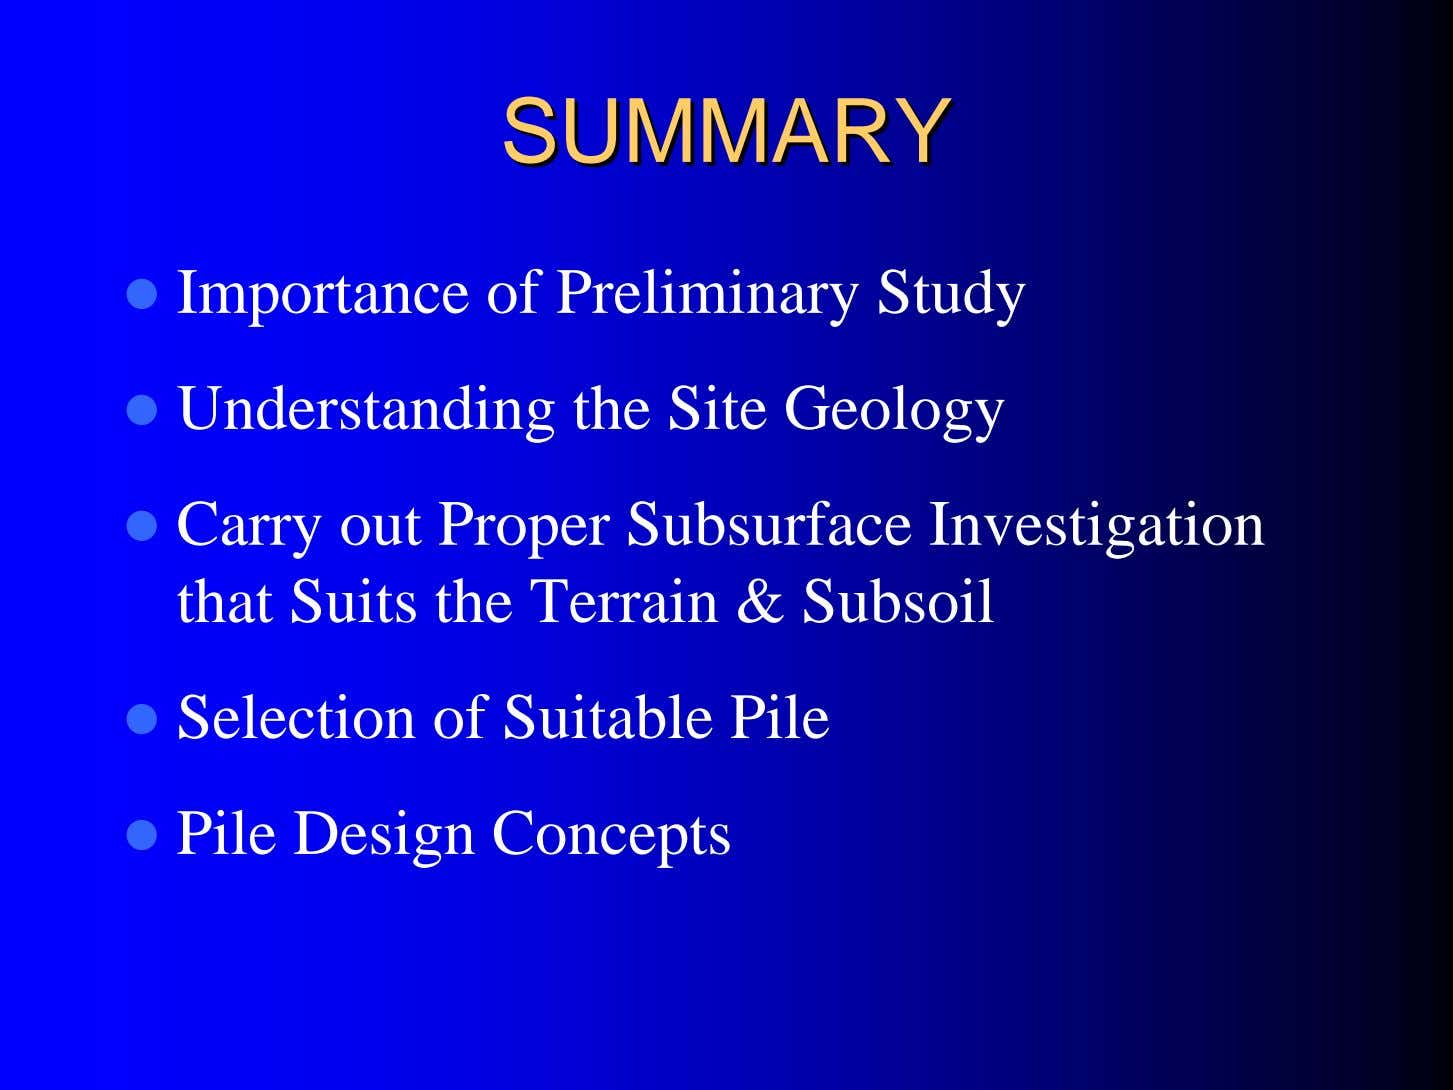 SUMMARYSUMMARY Importance of Preliminary Study Understanding the Site Geology Carry out Proper Subsurface